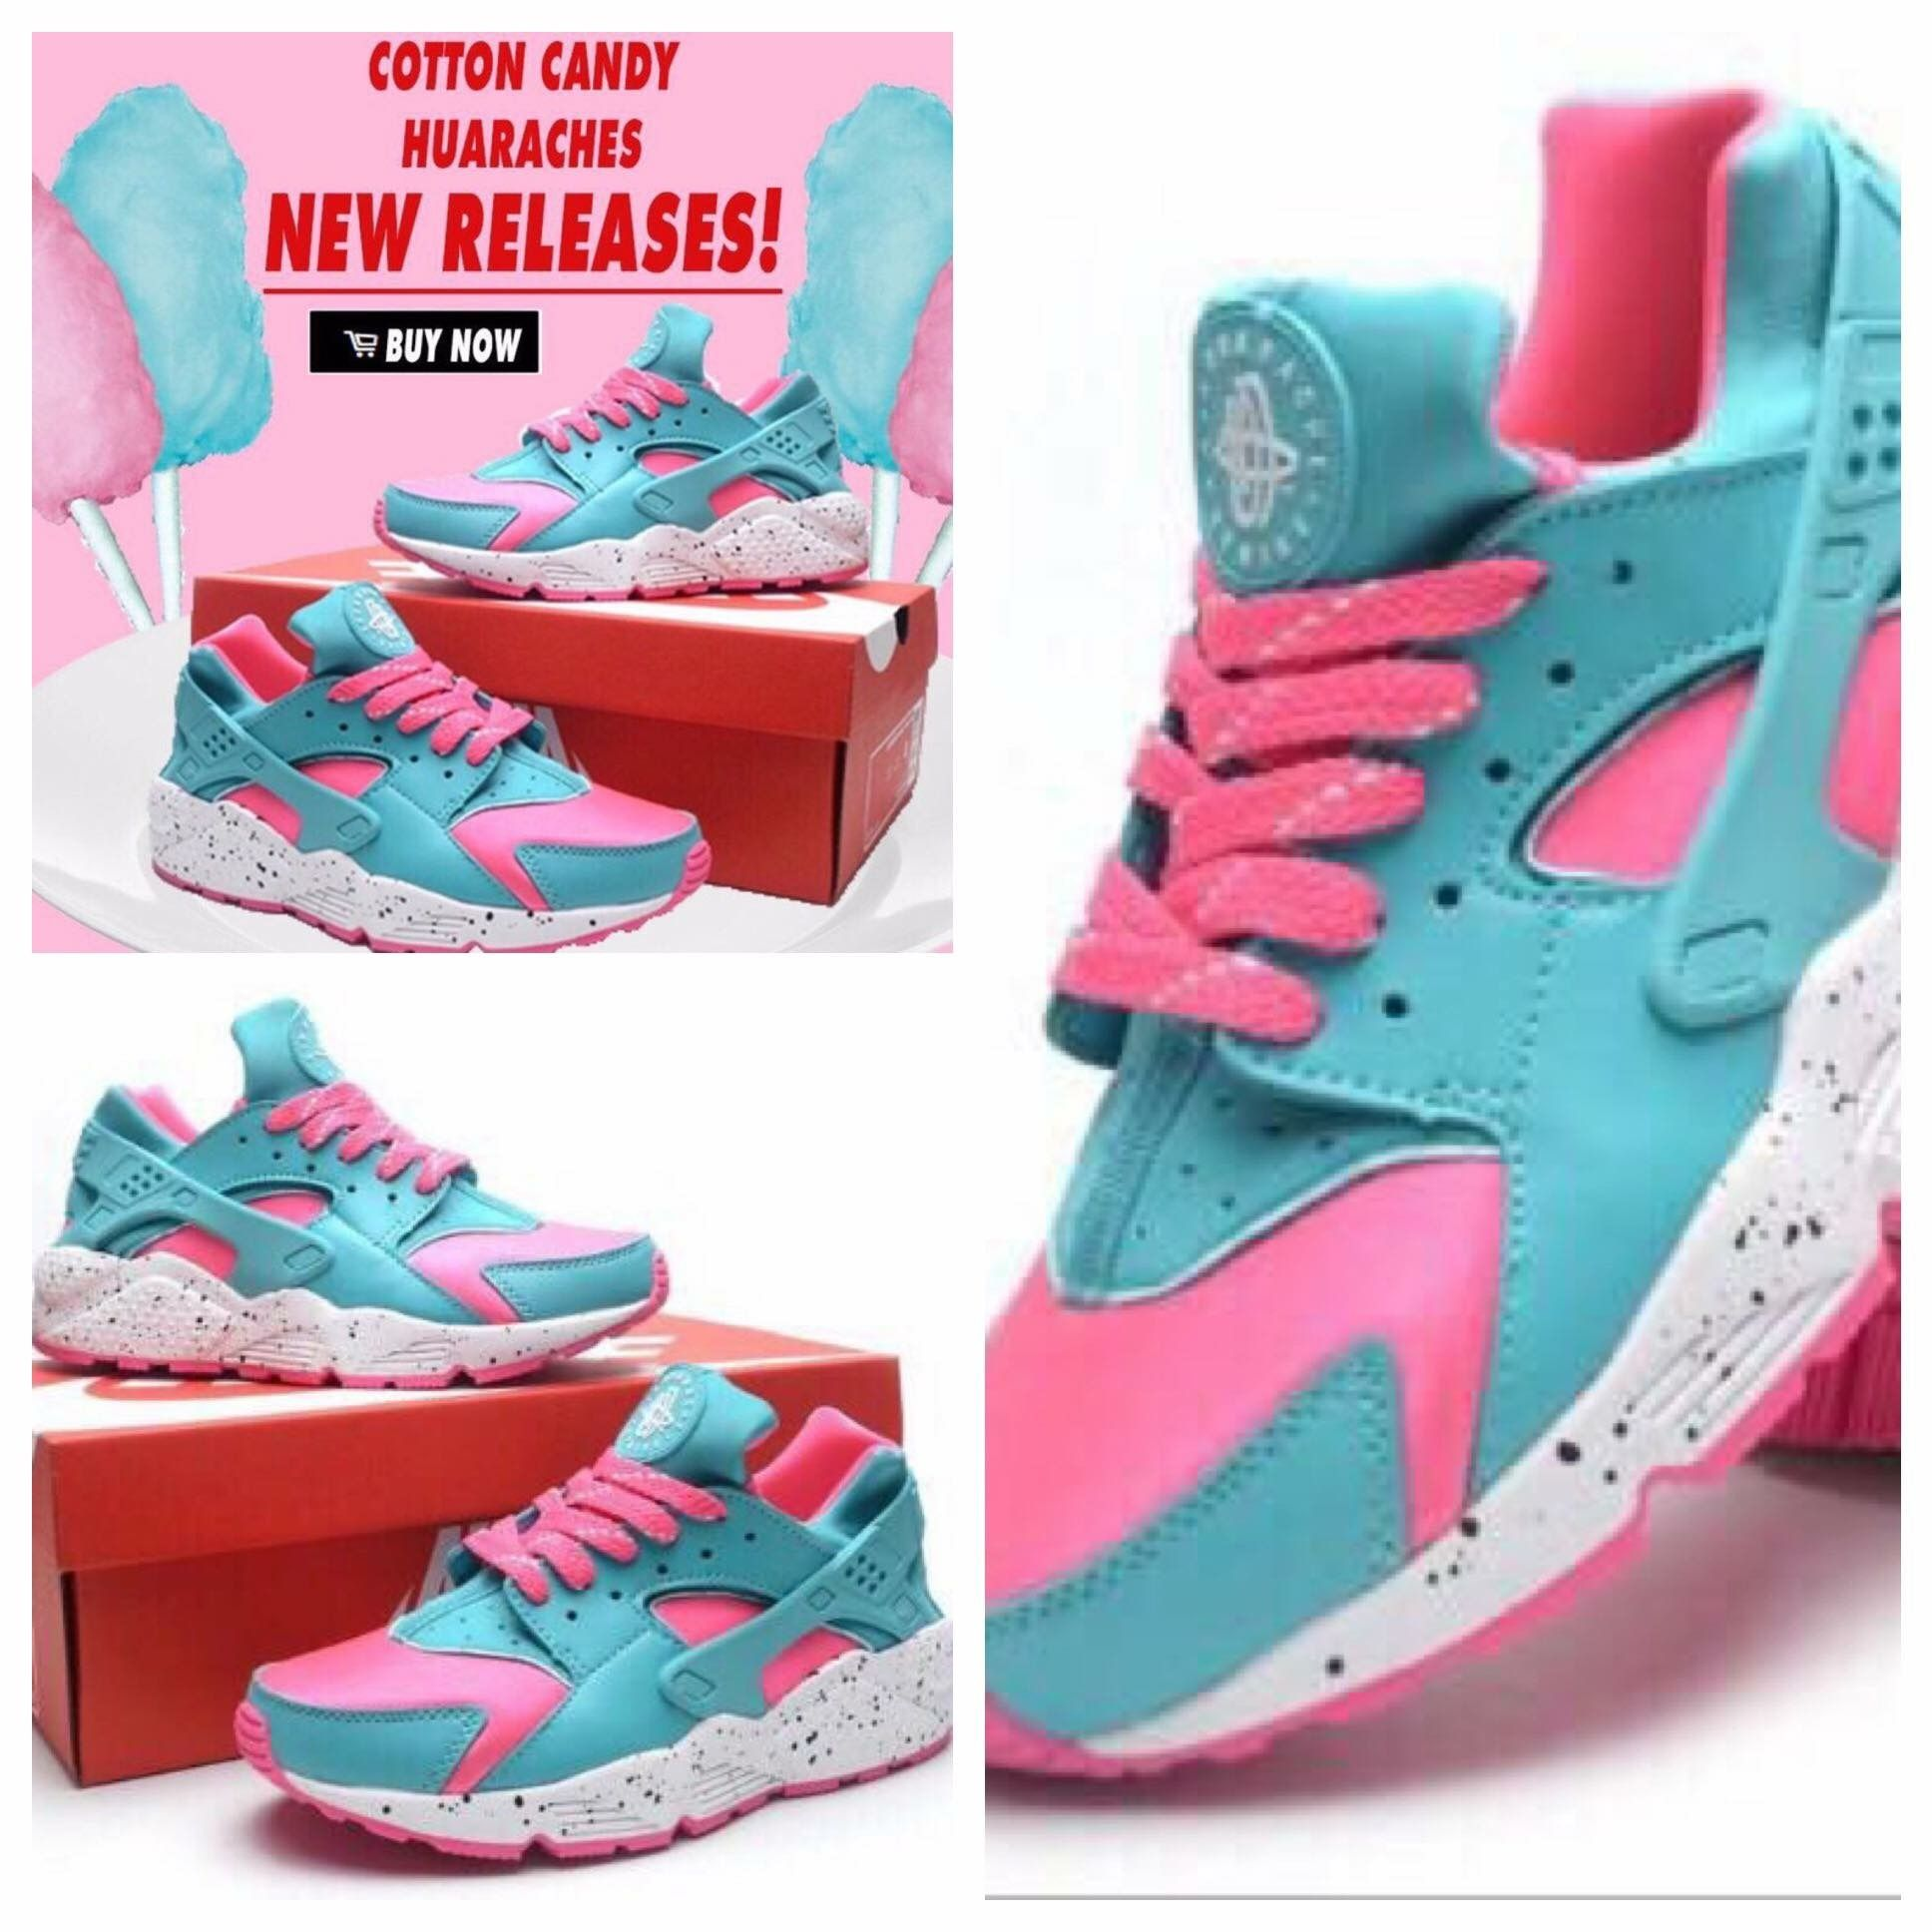 Cotton candy huaraches